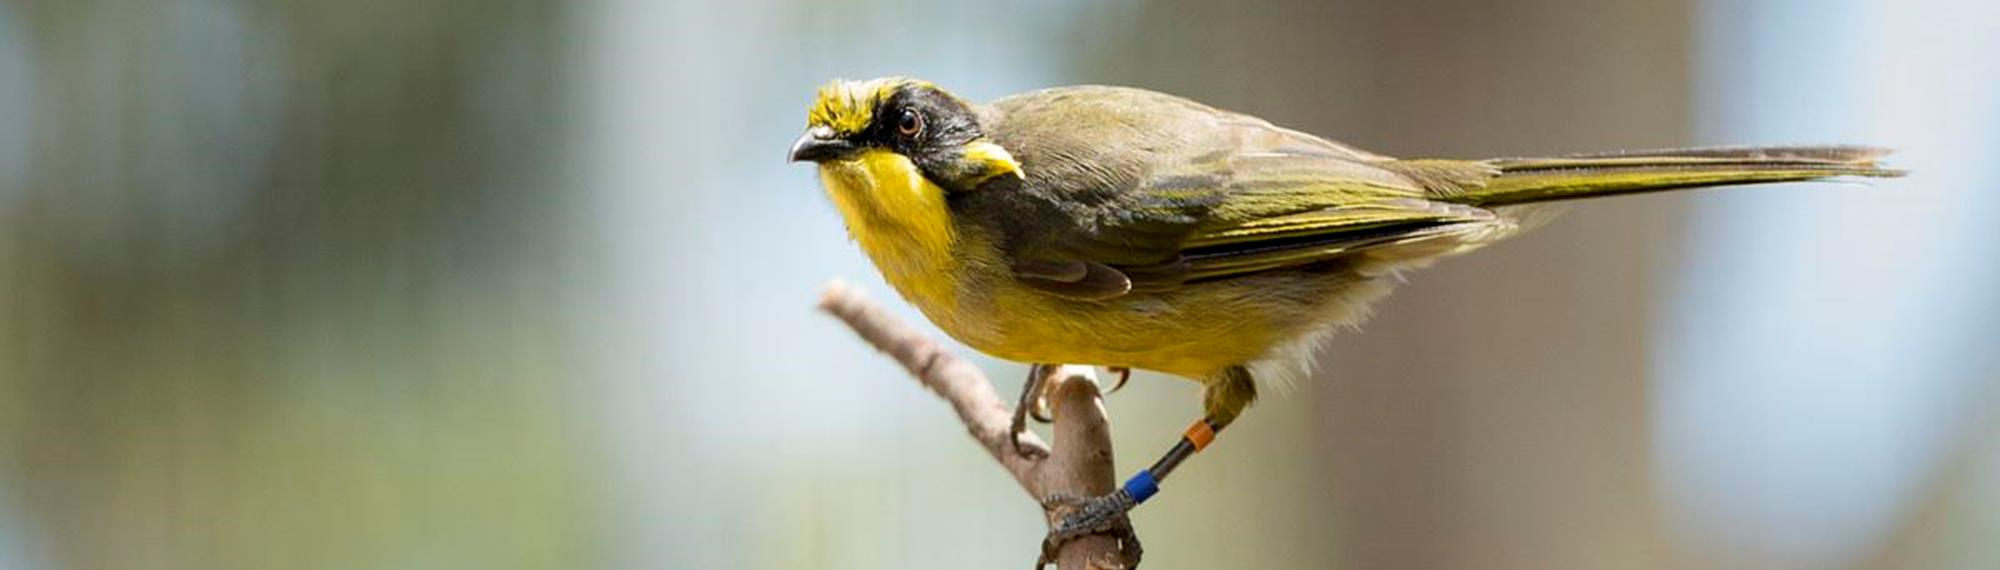 Juvenile Helmeted Honeyeater standing on a tree branch. Its a striking yellow colour with black and olive.